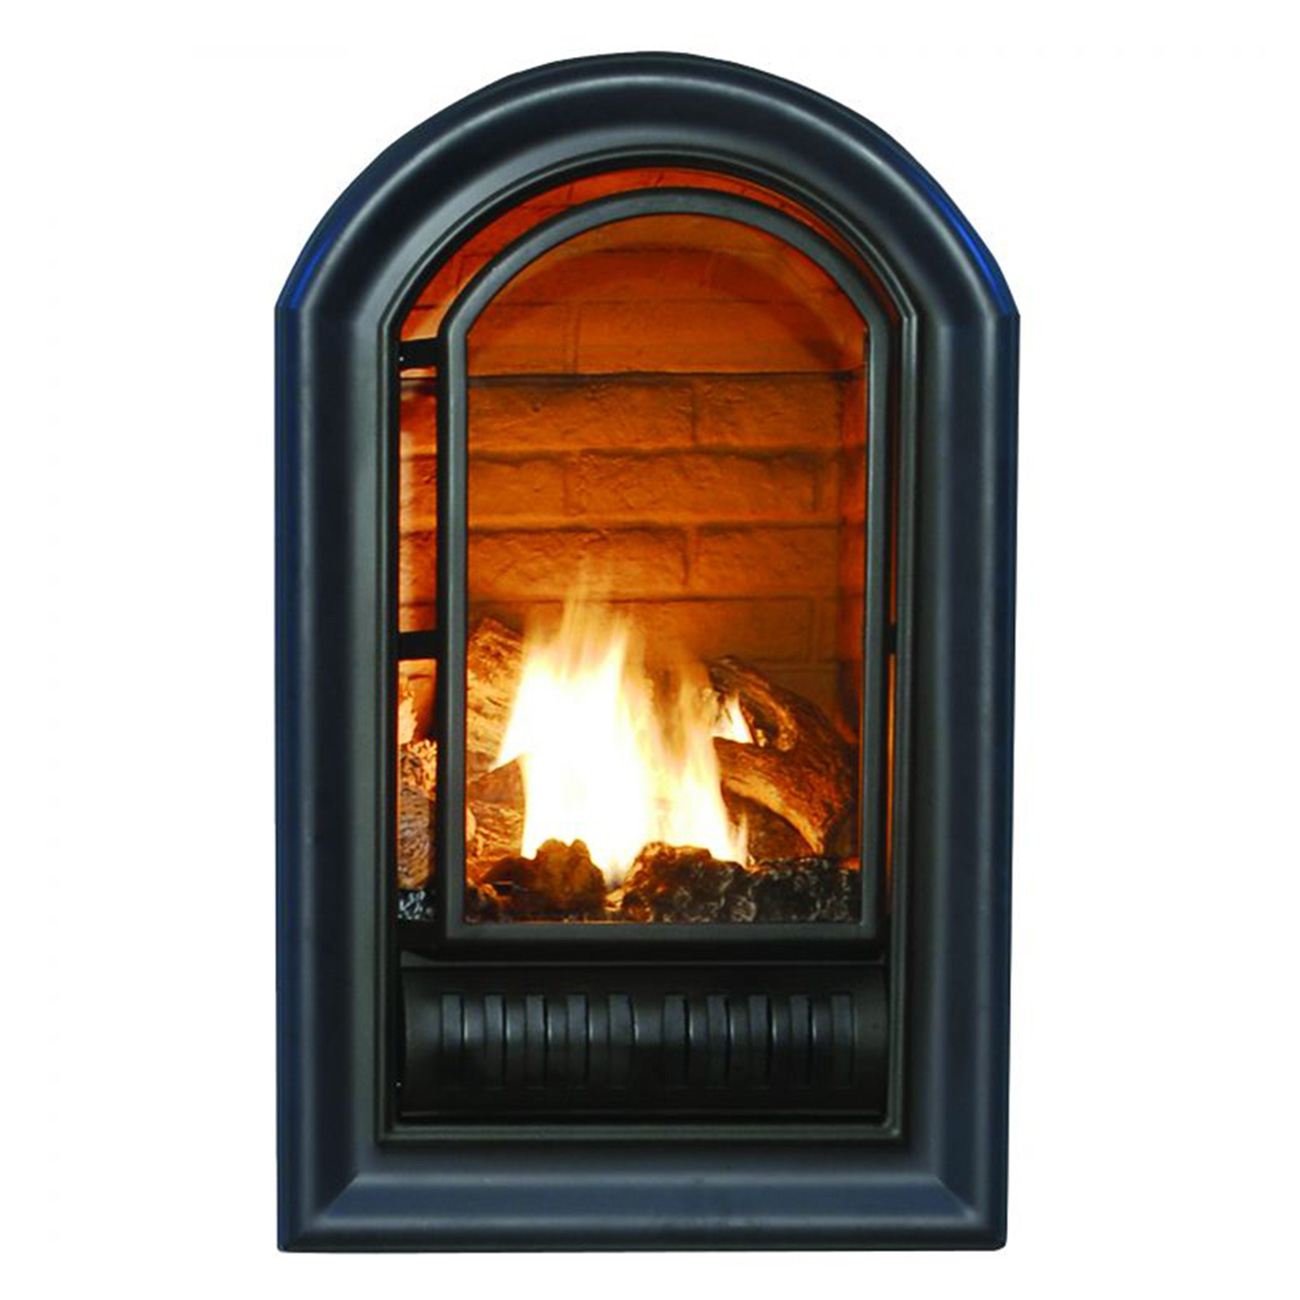 ventless gas fireplace insert 20 000 btu procom heating